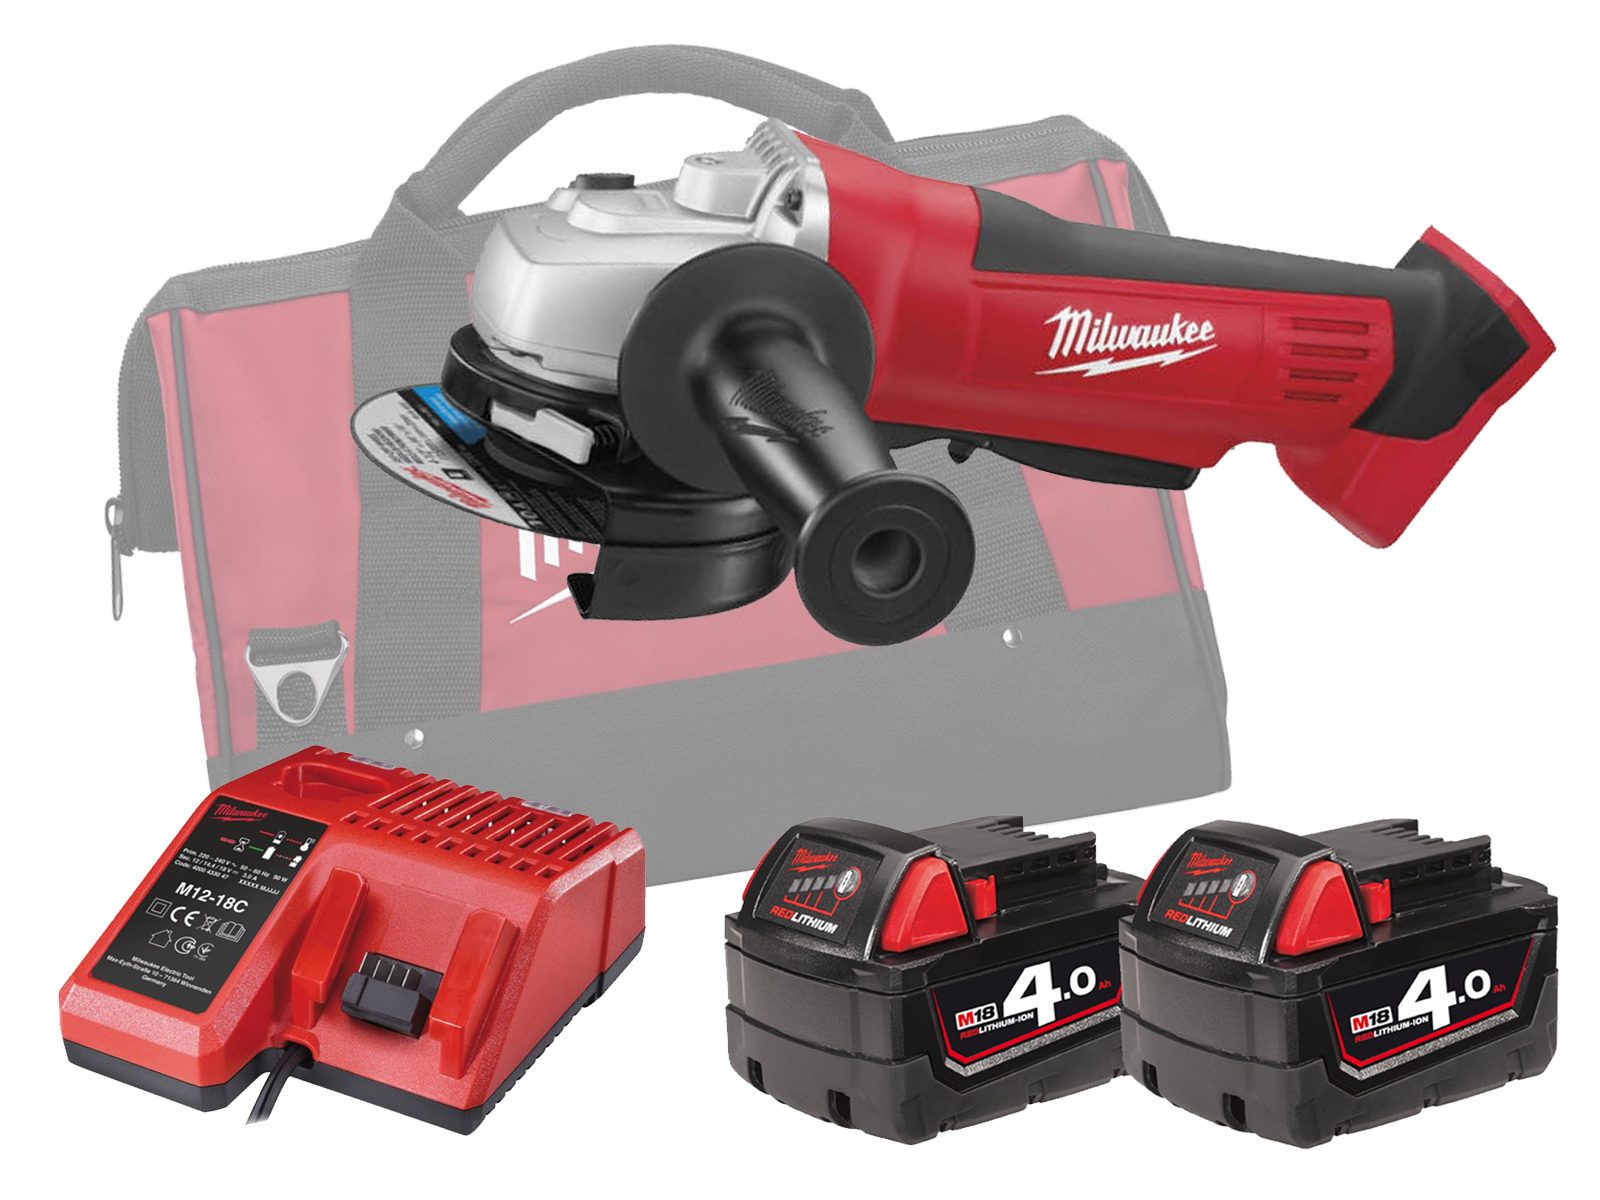 MILWAUKEE 18V HEAVY DUTY 115MM ANGLE GRINDER - HD18AG115 - 4.0AH PACK